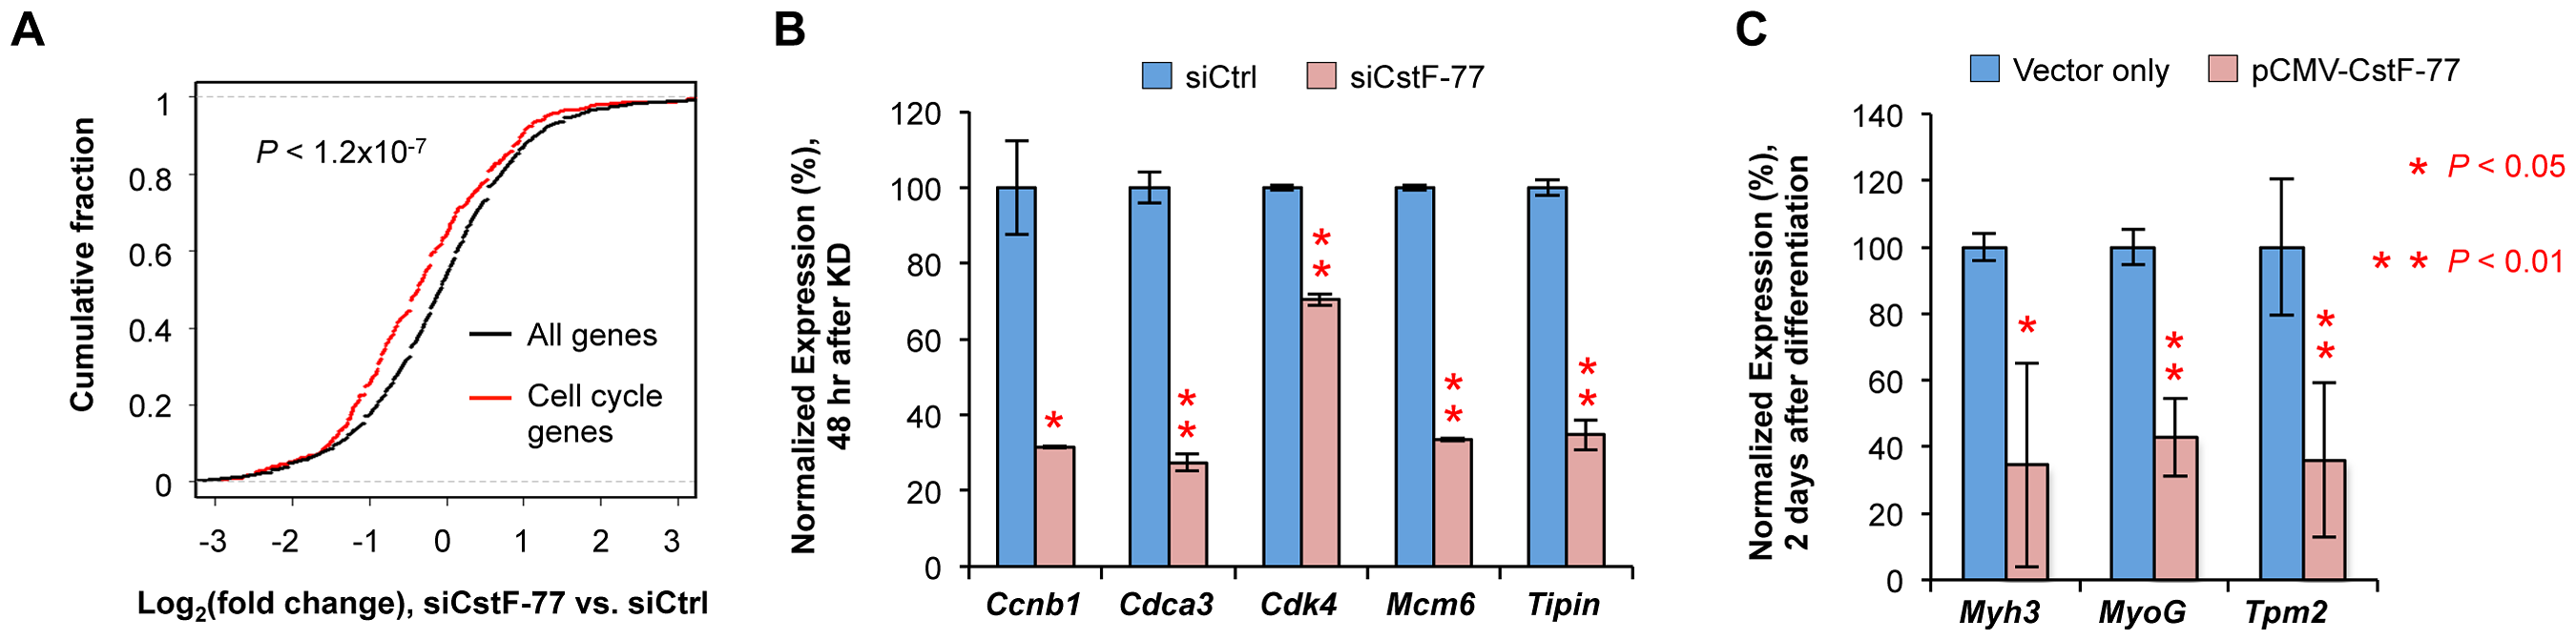 Cell cycle genes are affected by CstF-77 knockdown.